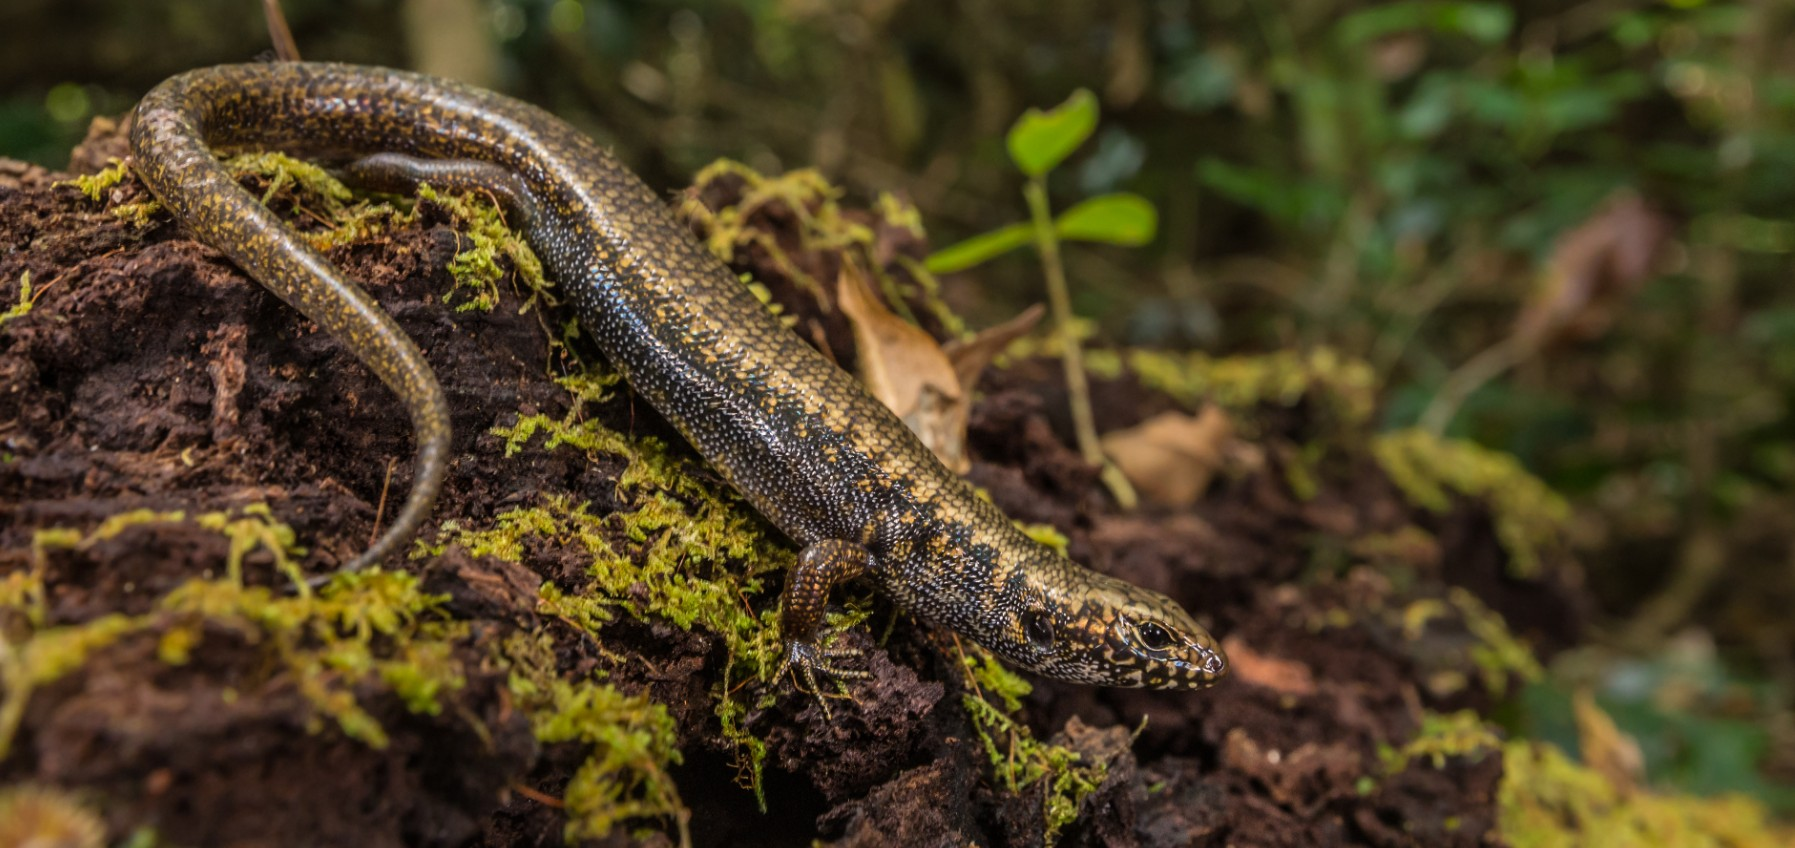 Skink lizard in the forest